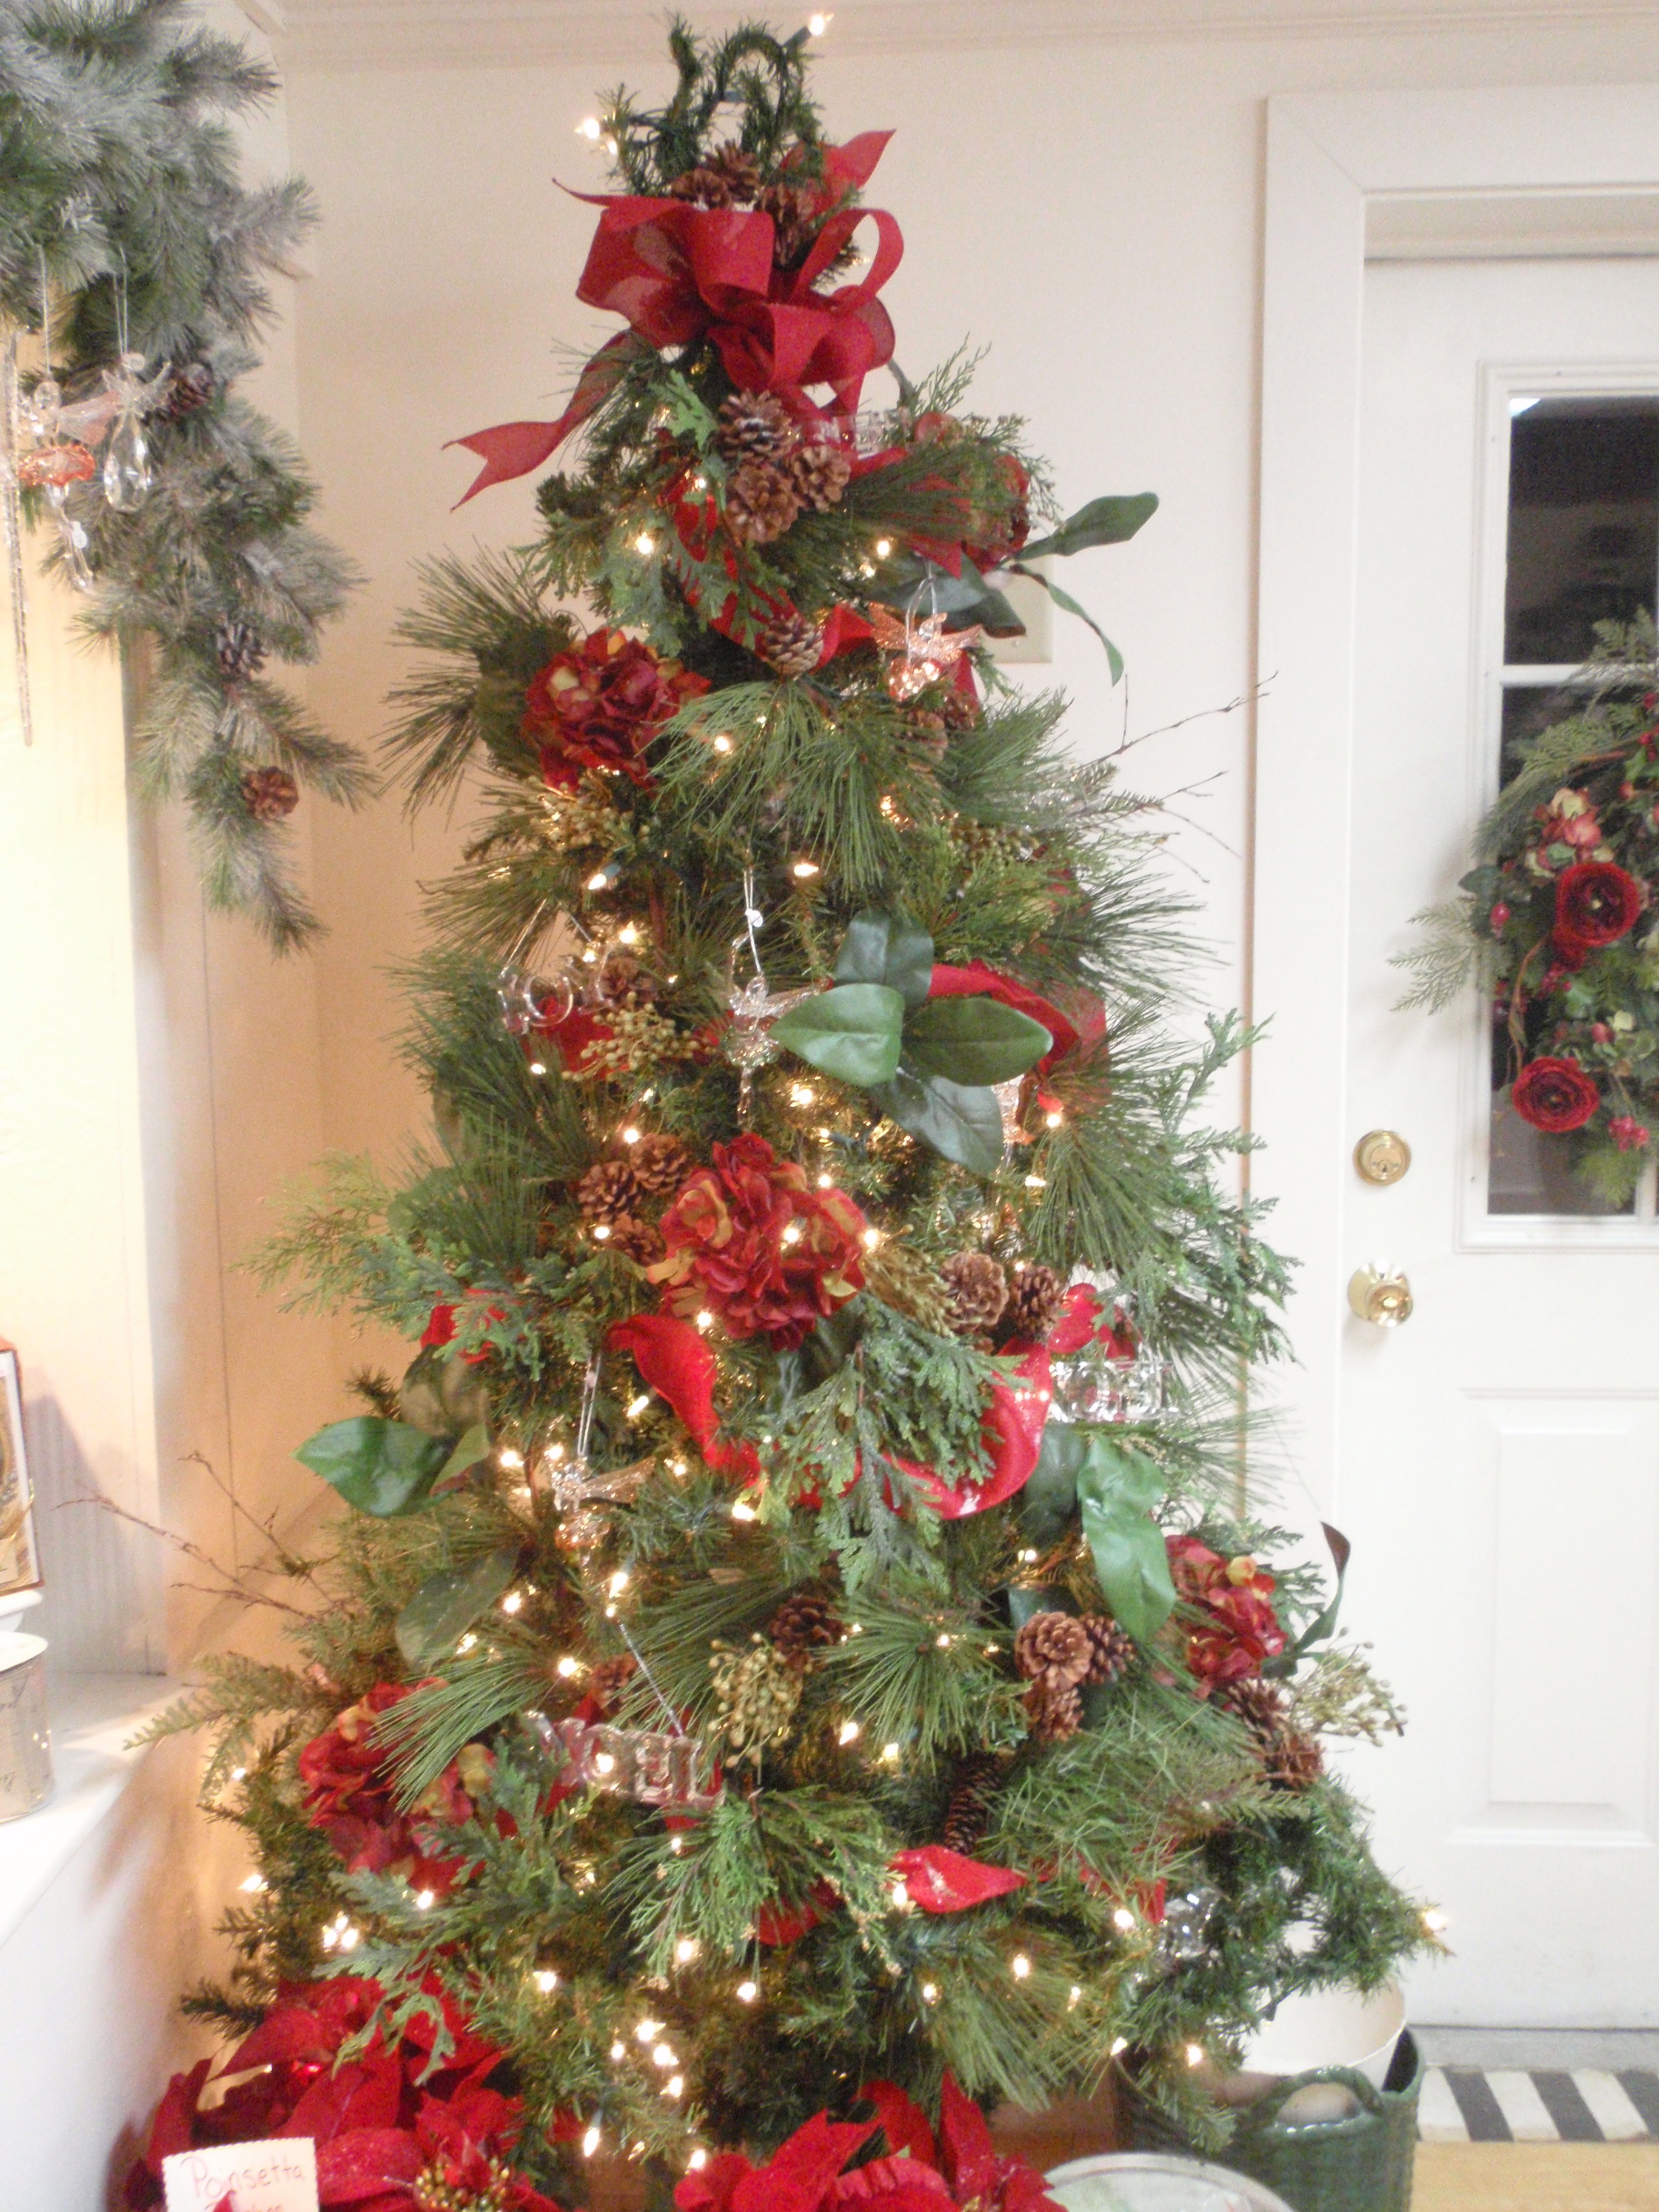 Christmas tree decorations ideas with bows decoration